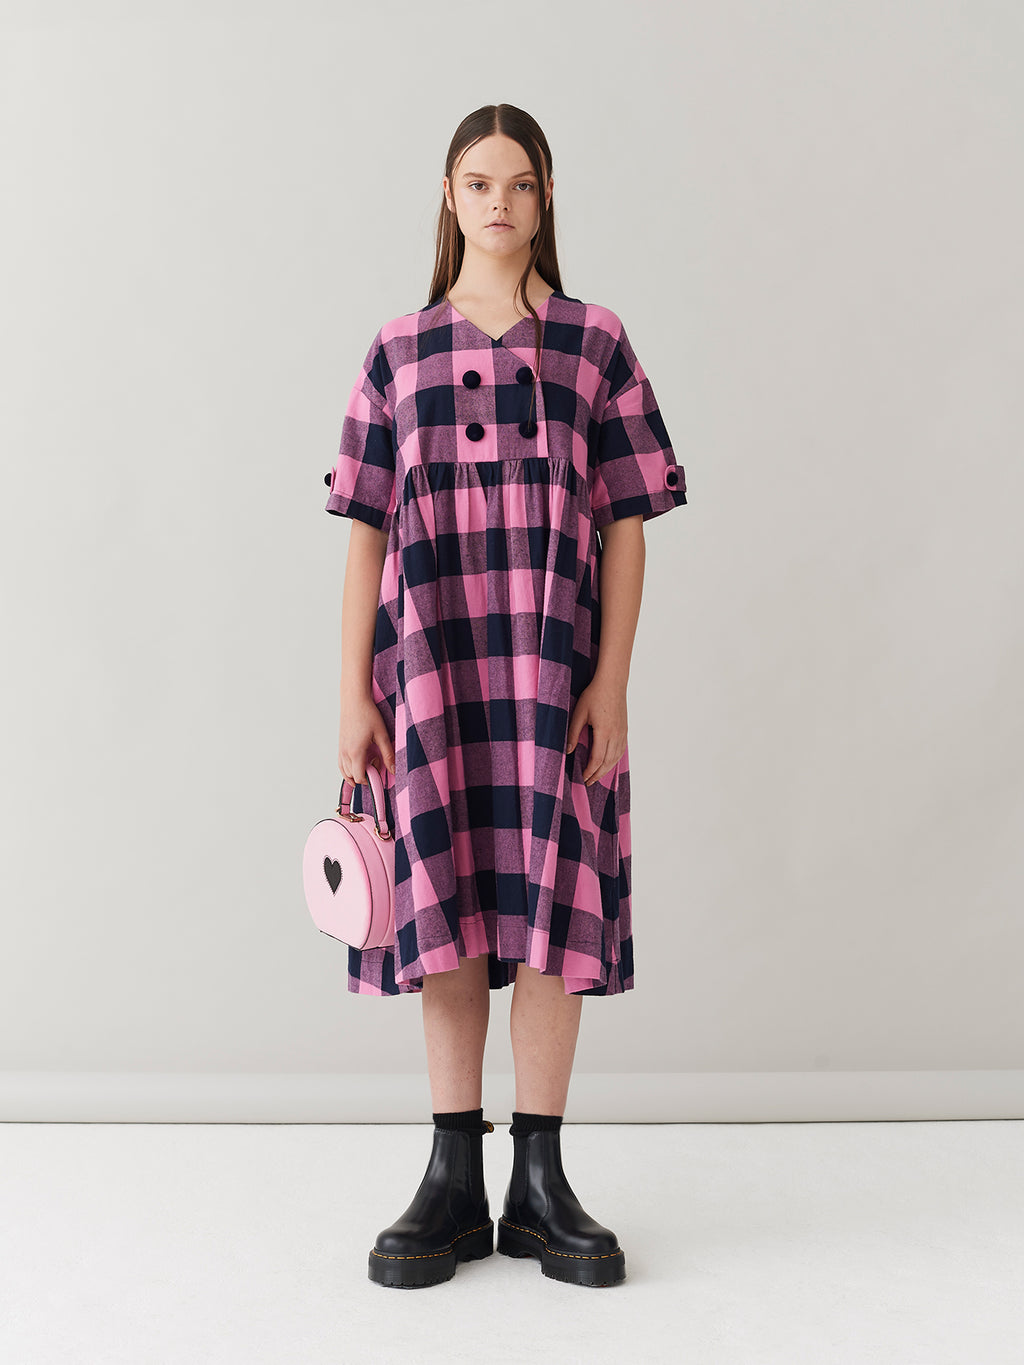 G.E.M. Candy Check Flannel Dress